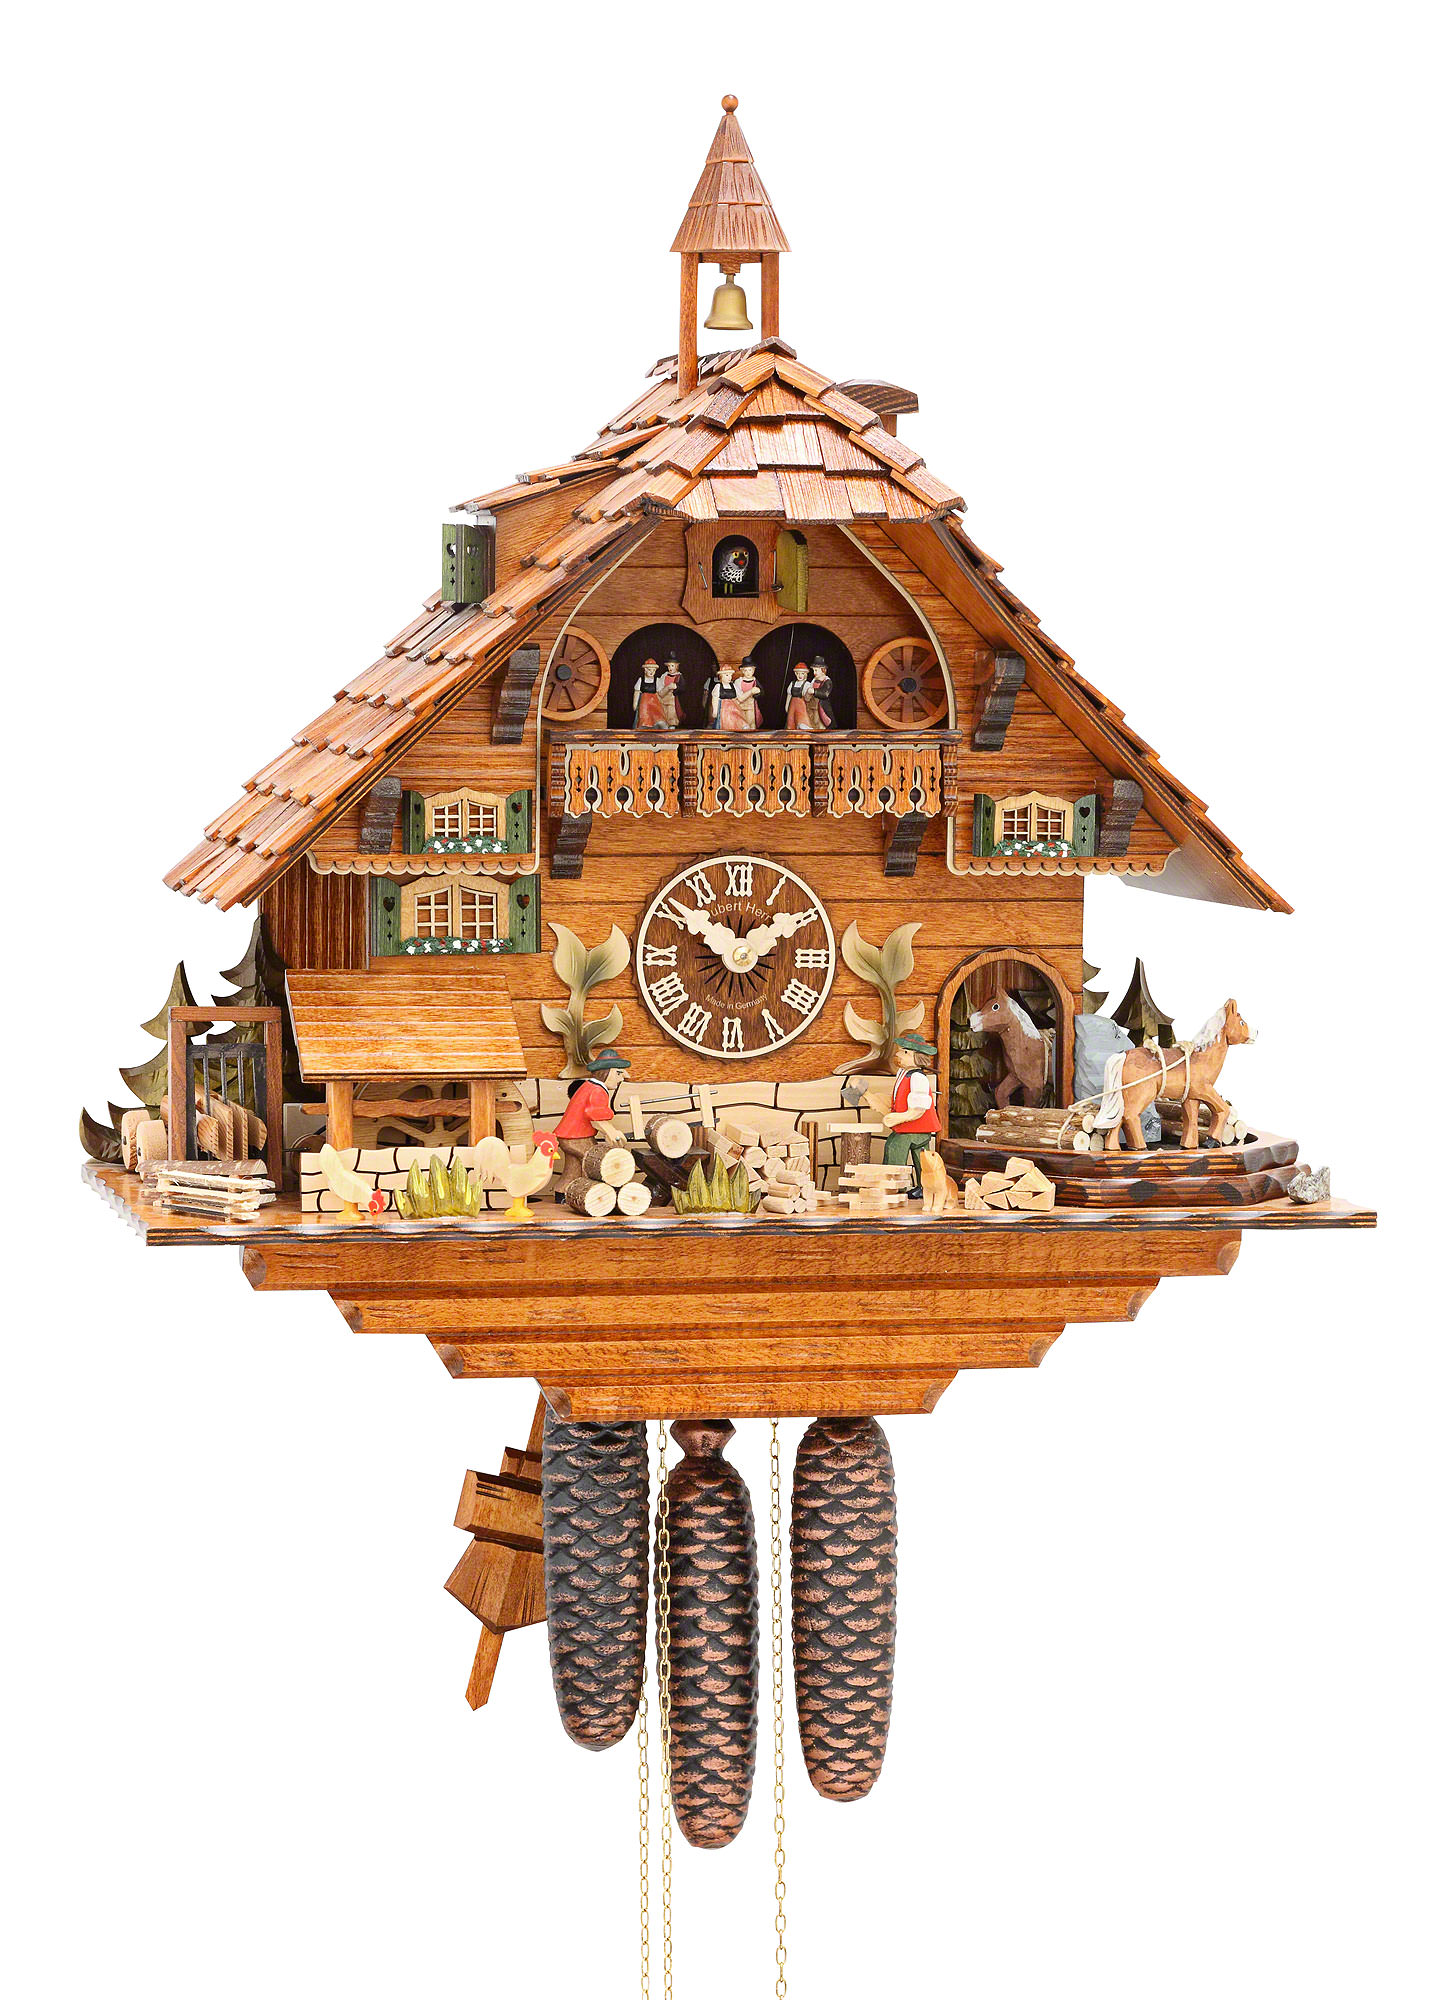 Cuckoo Clock 8 Day Movement Chalet Style 55cm By Hubert